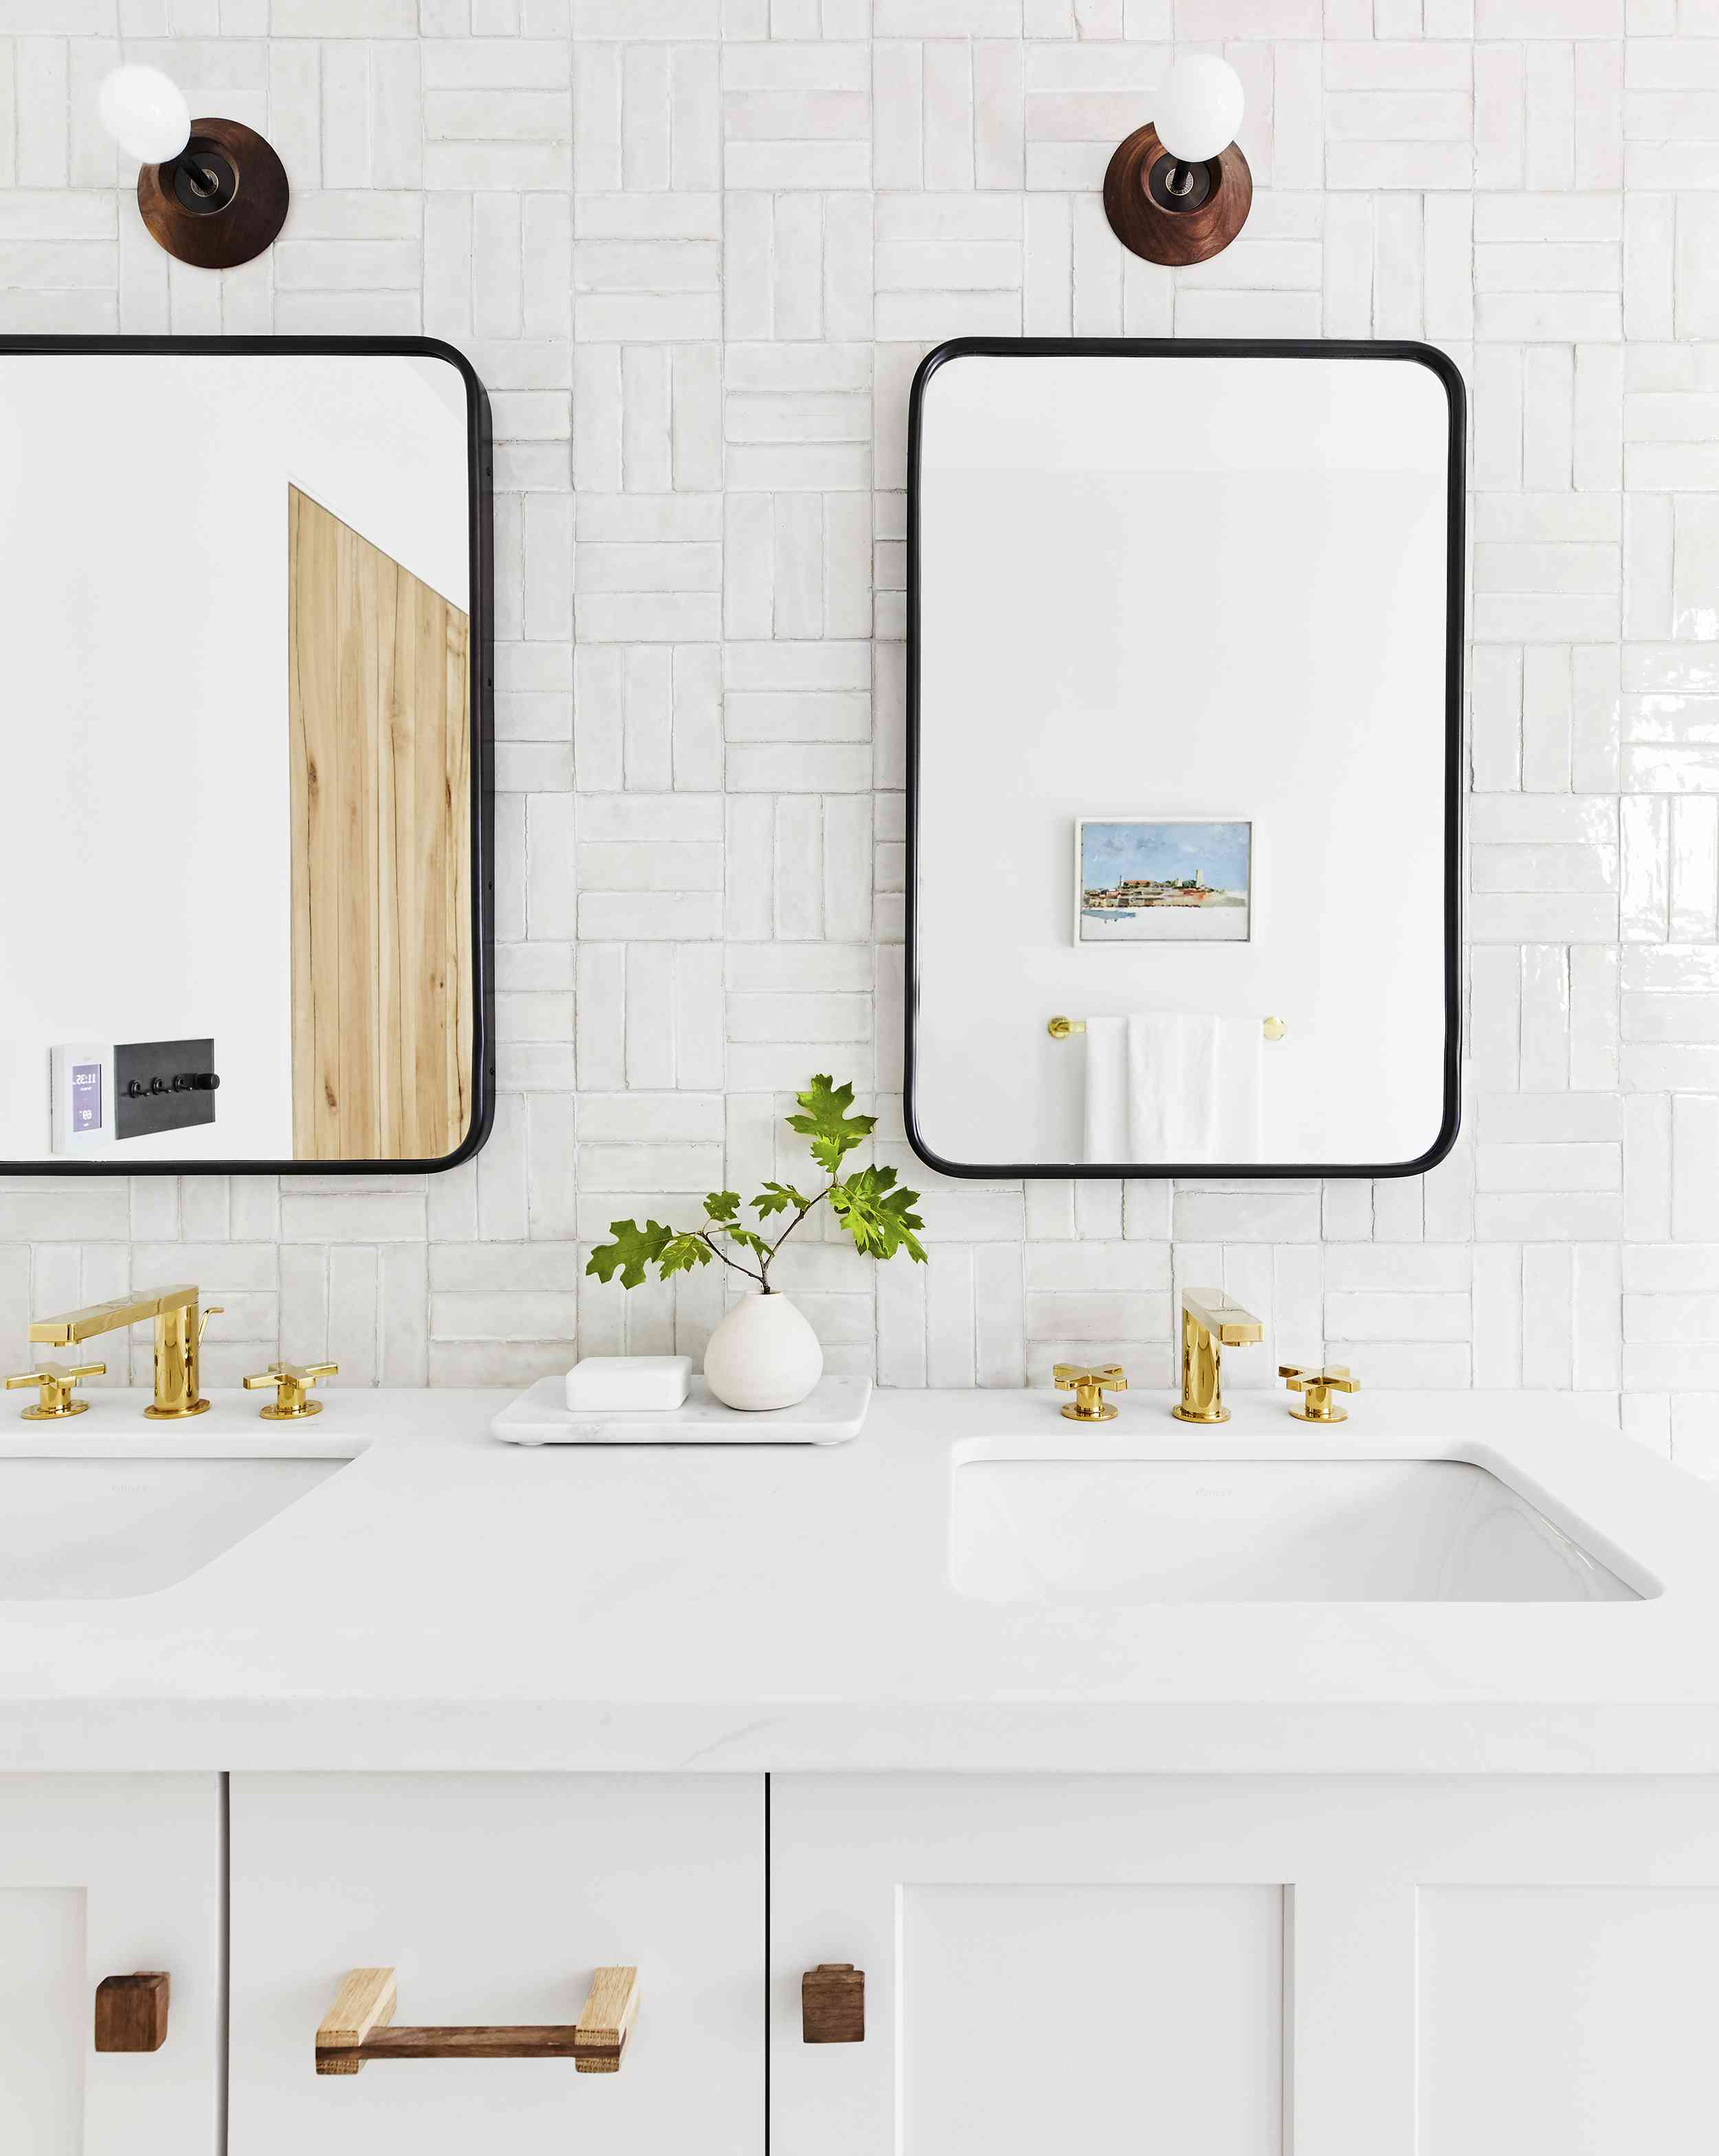 How to Clean Bathroom Grout the Right Way